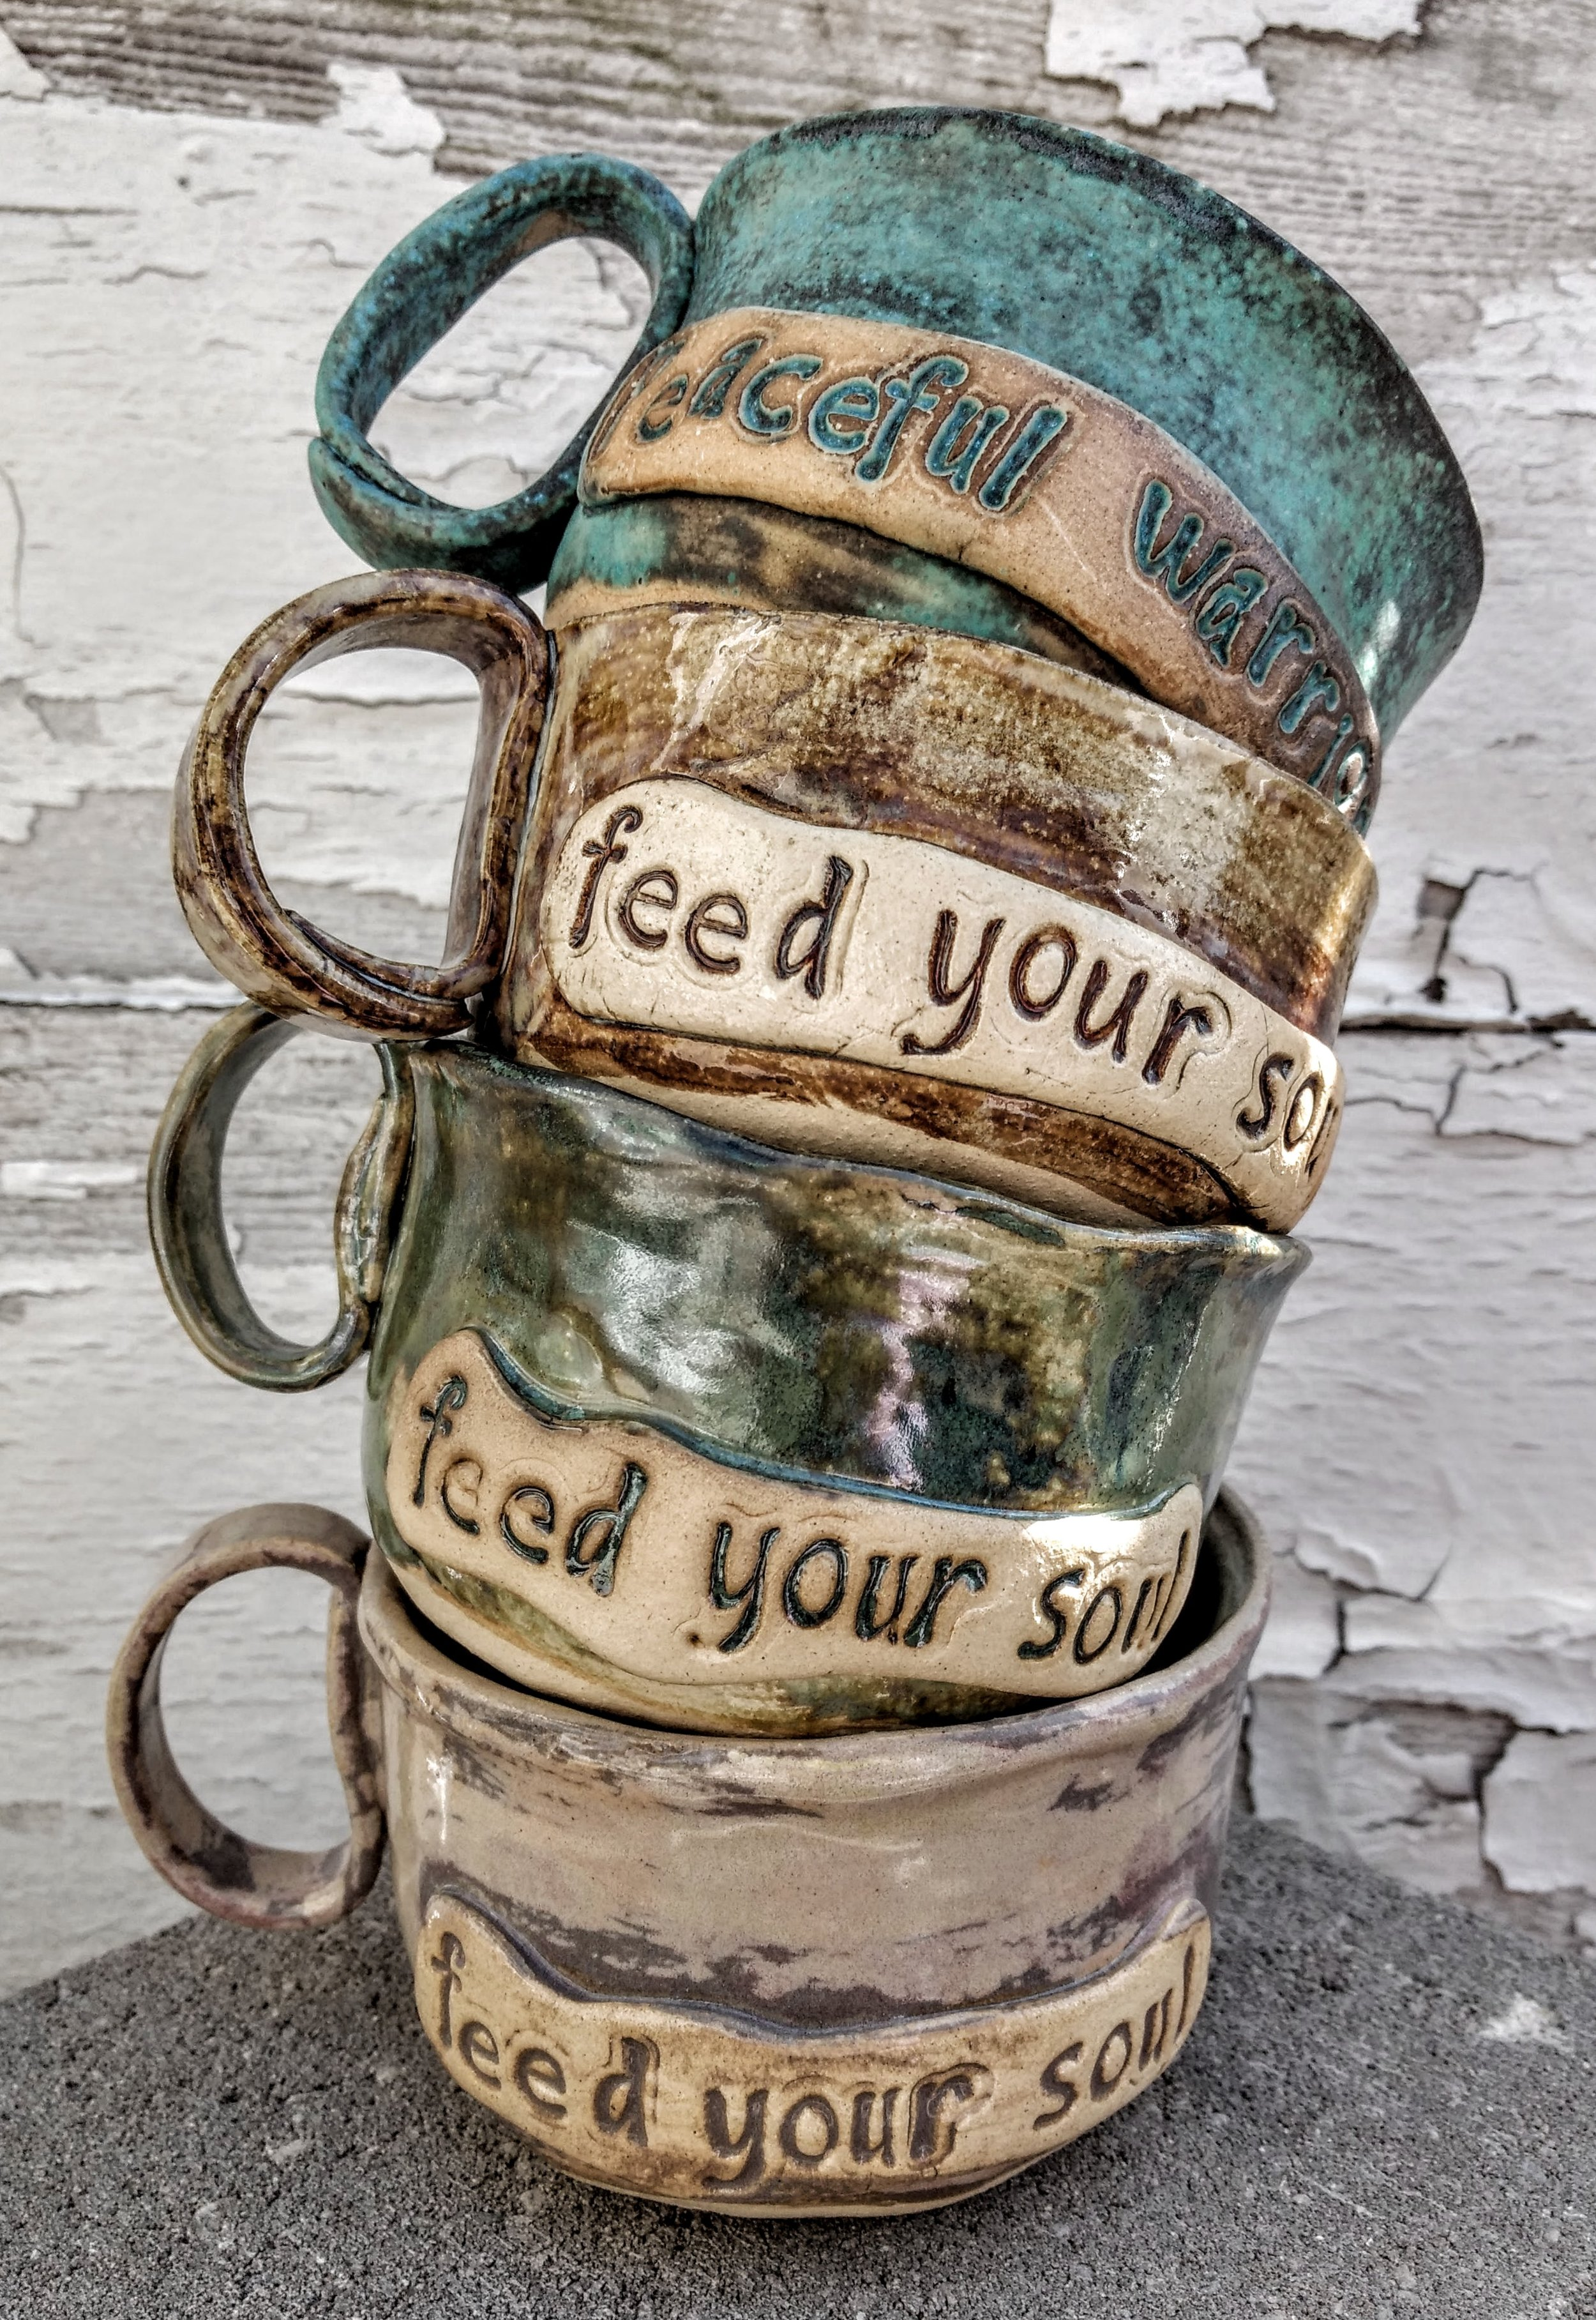 JUMBO MUGS / BOWL - PEACEFUL WARRIOR OR FEED YOUR SOUL